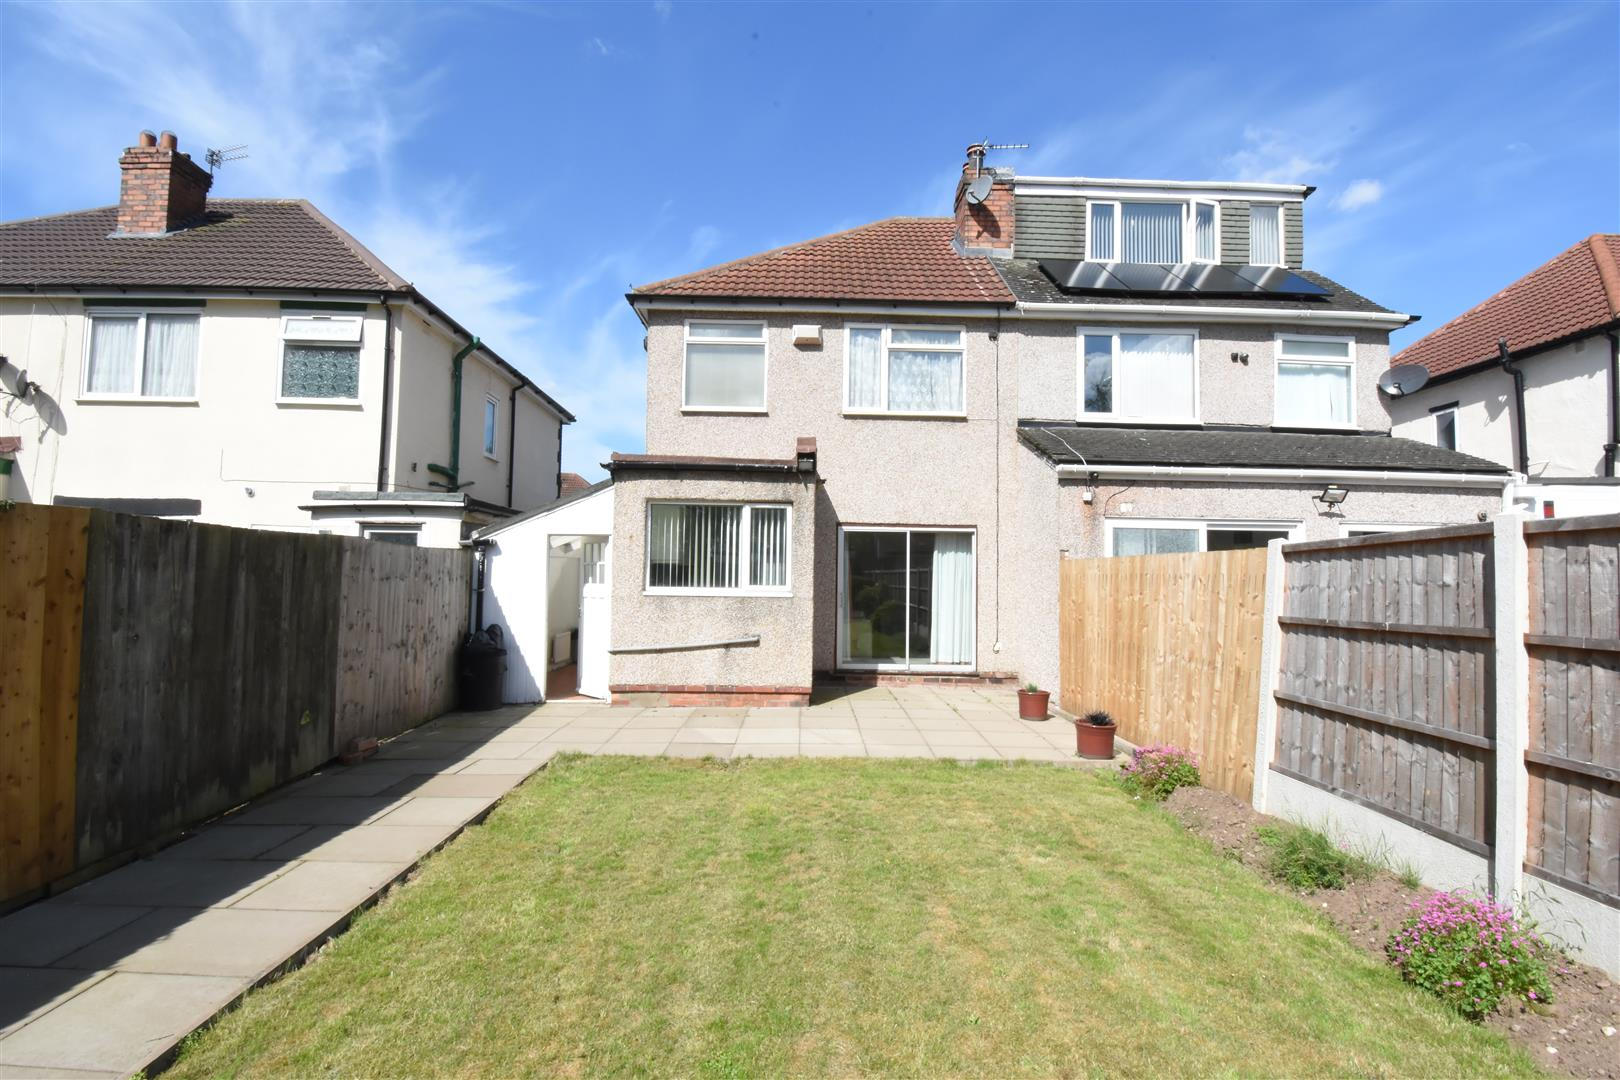 3 bed house for sale in Mickleover Road, Ward End, Birmingham 9